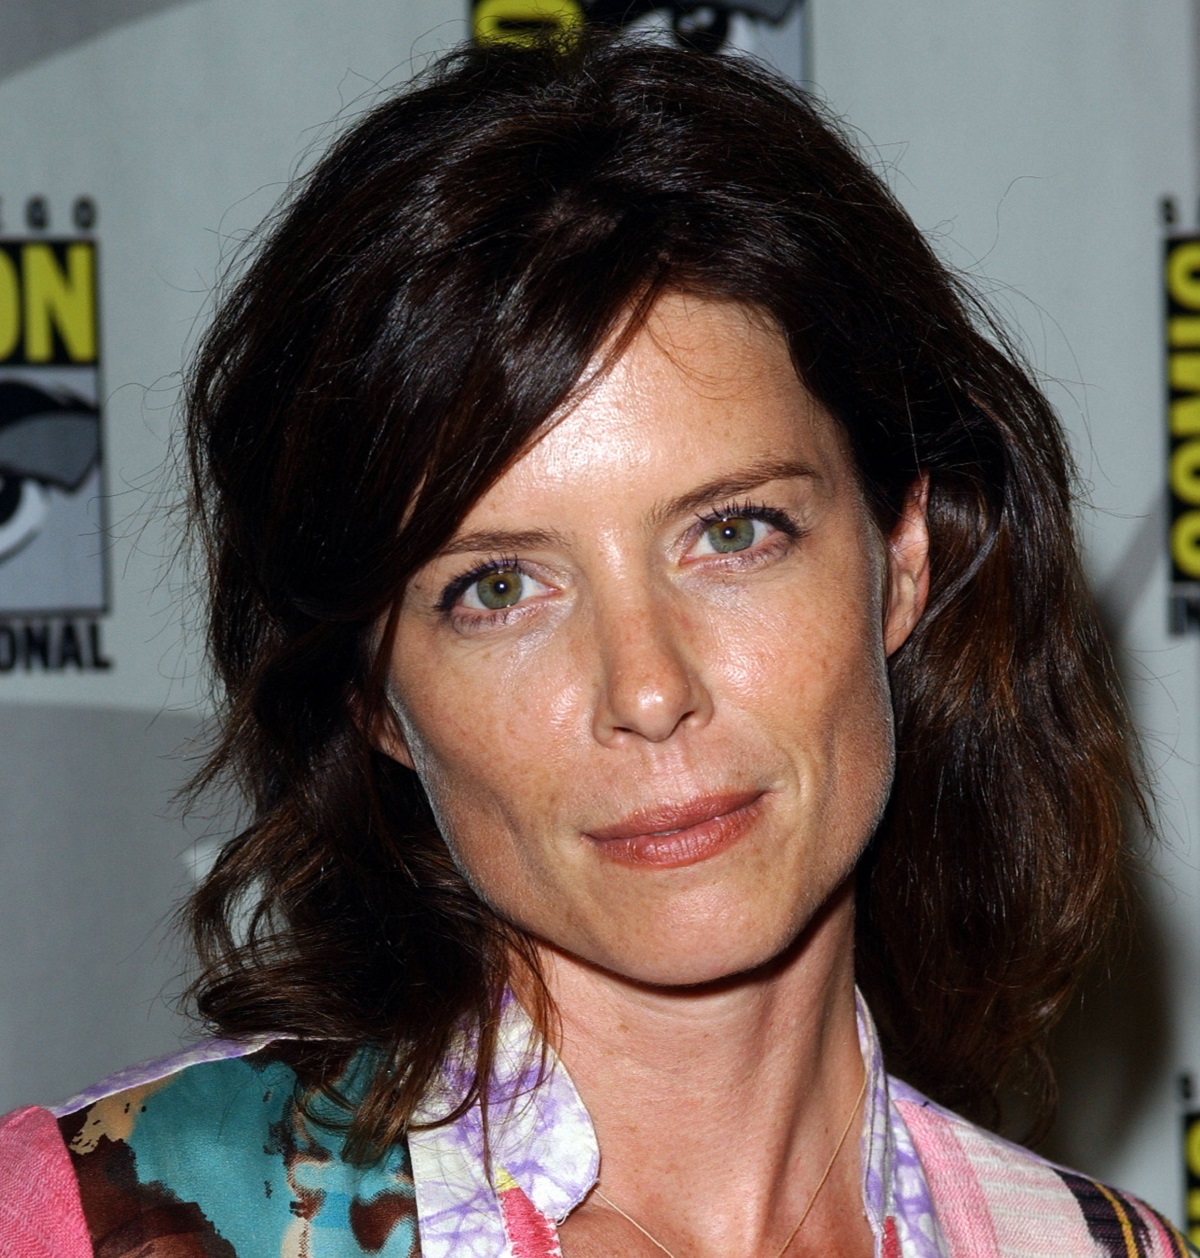 Torri Higginson smiles and poses for a photograph while at an event.